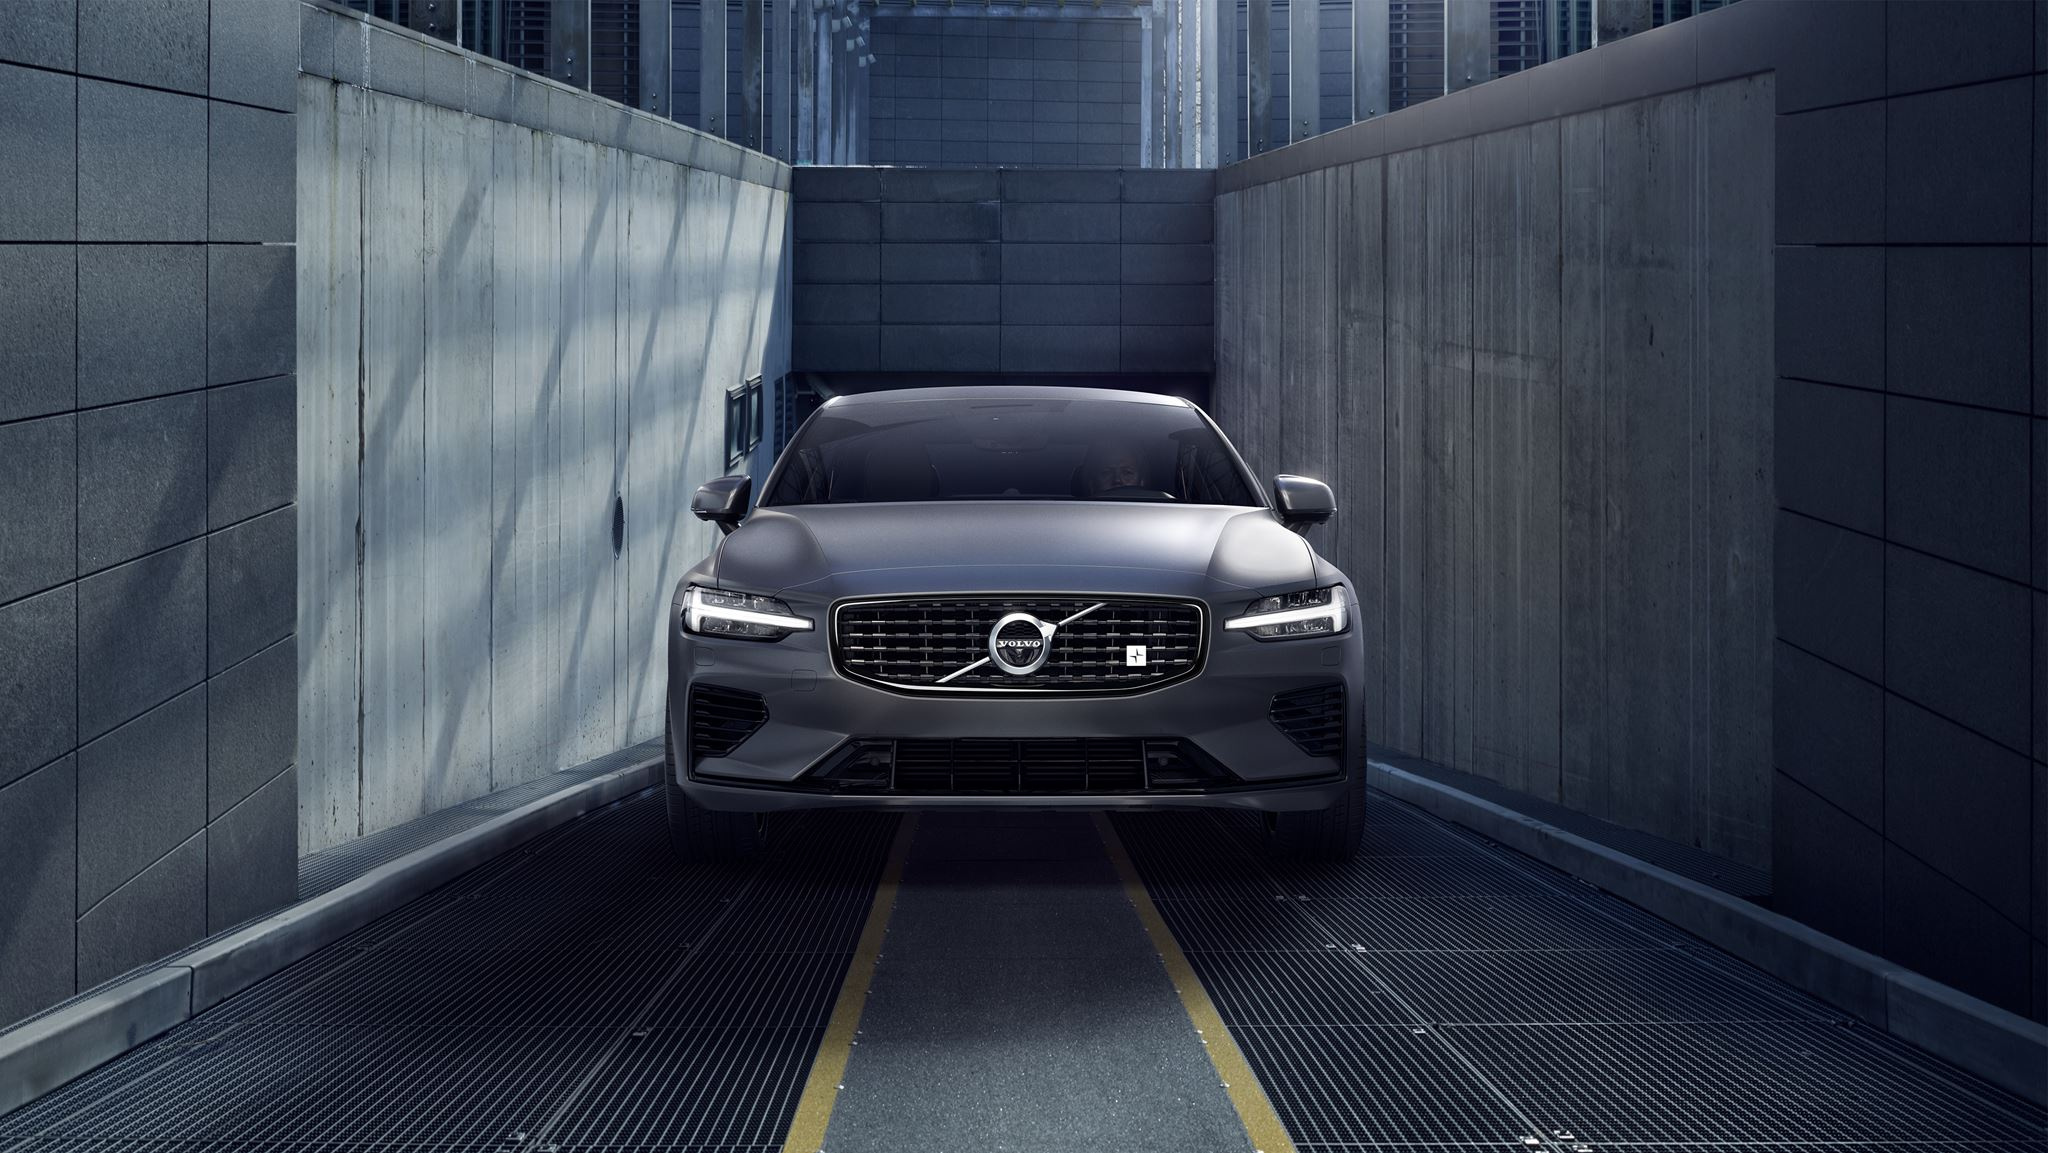 s60-trims-polestar-exterior-feature1-1